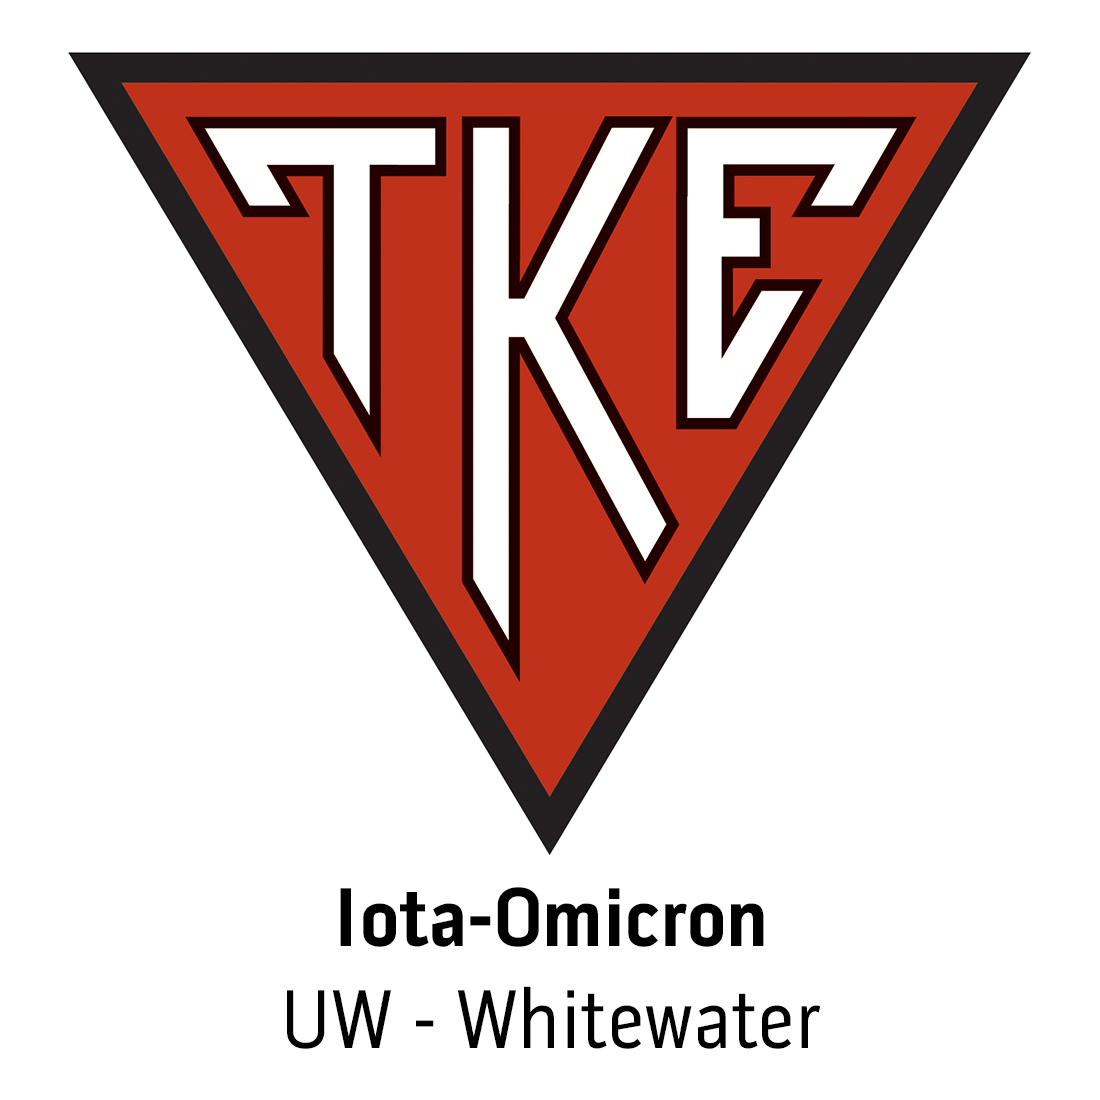 Iota-Omicron Colony Colony at University of Wisconsin-Whitewater